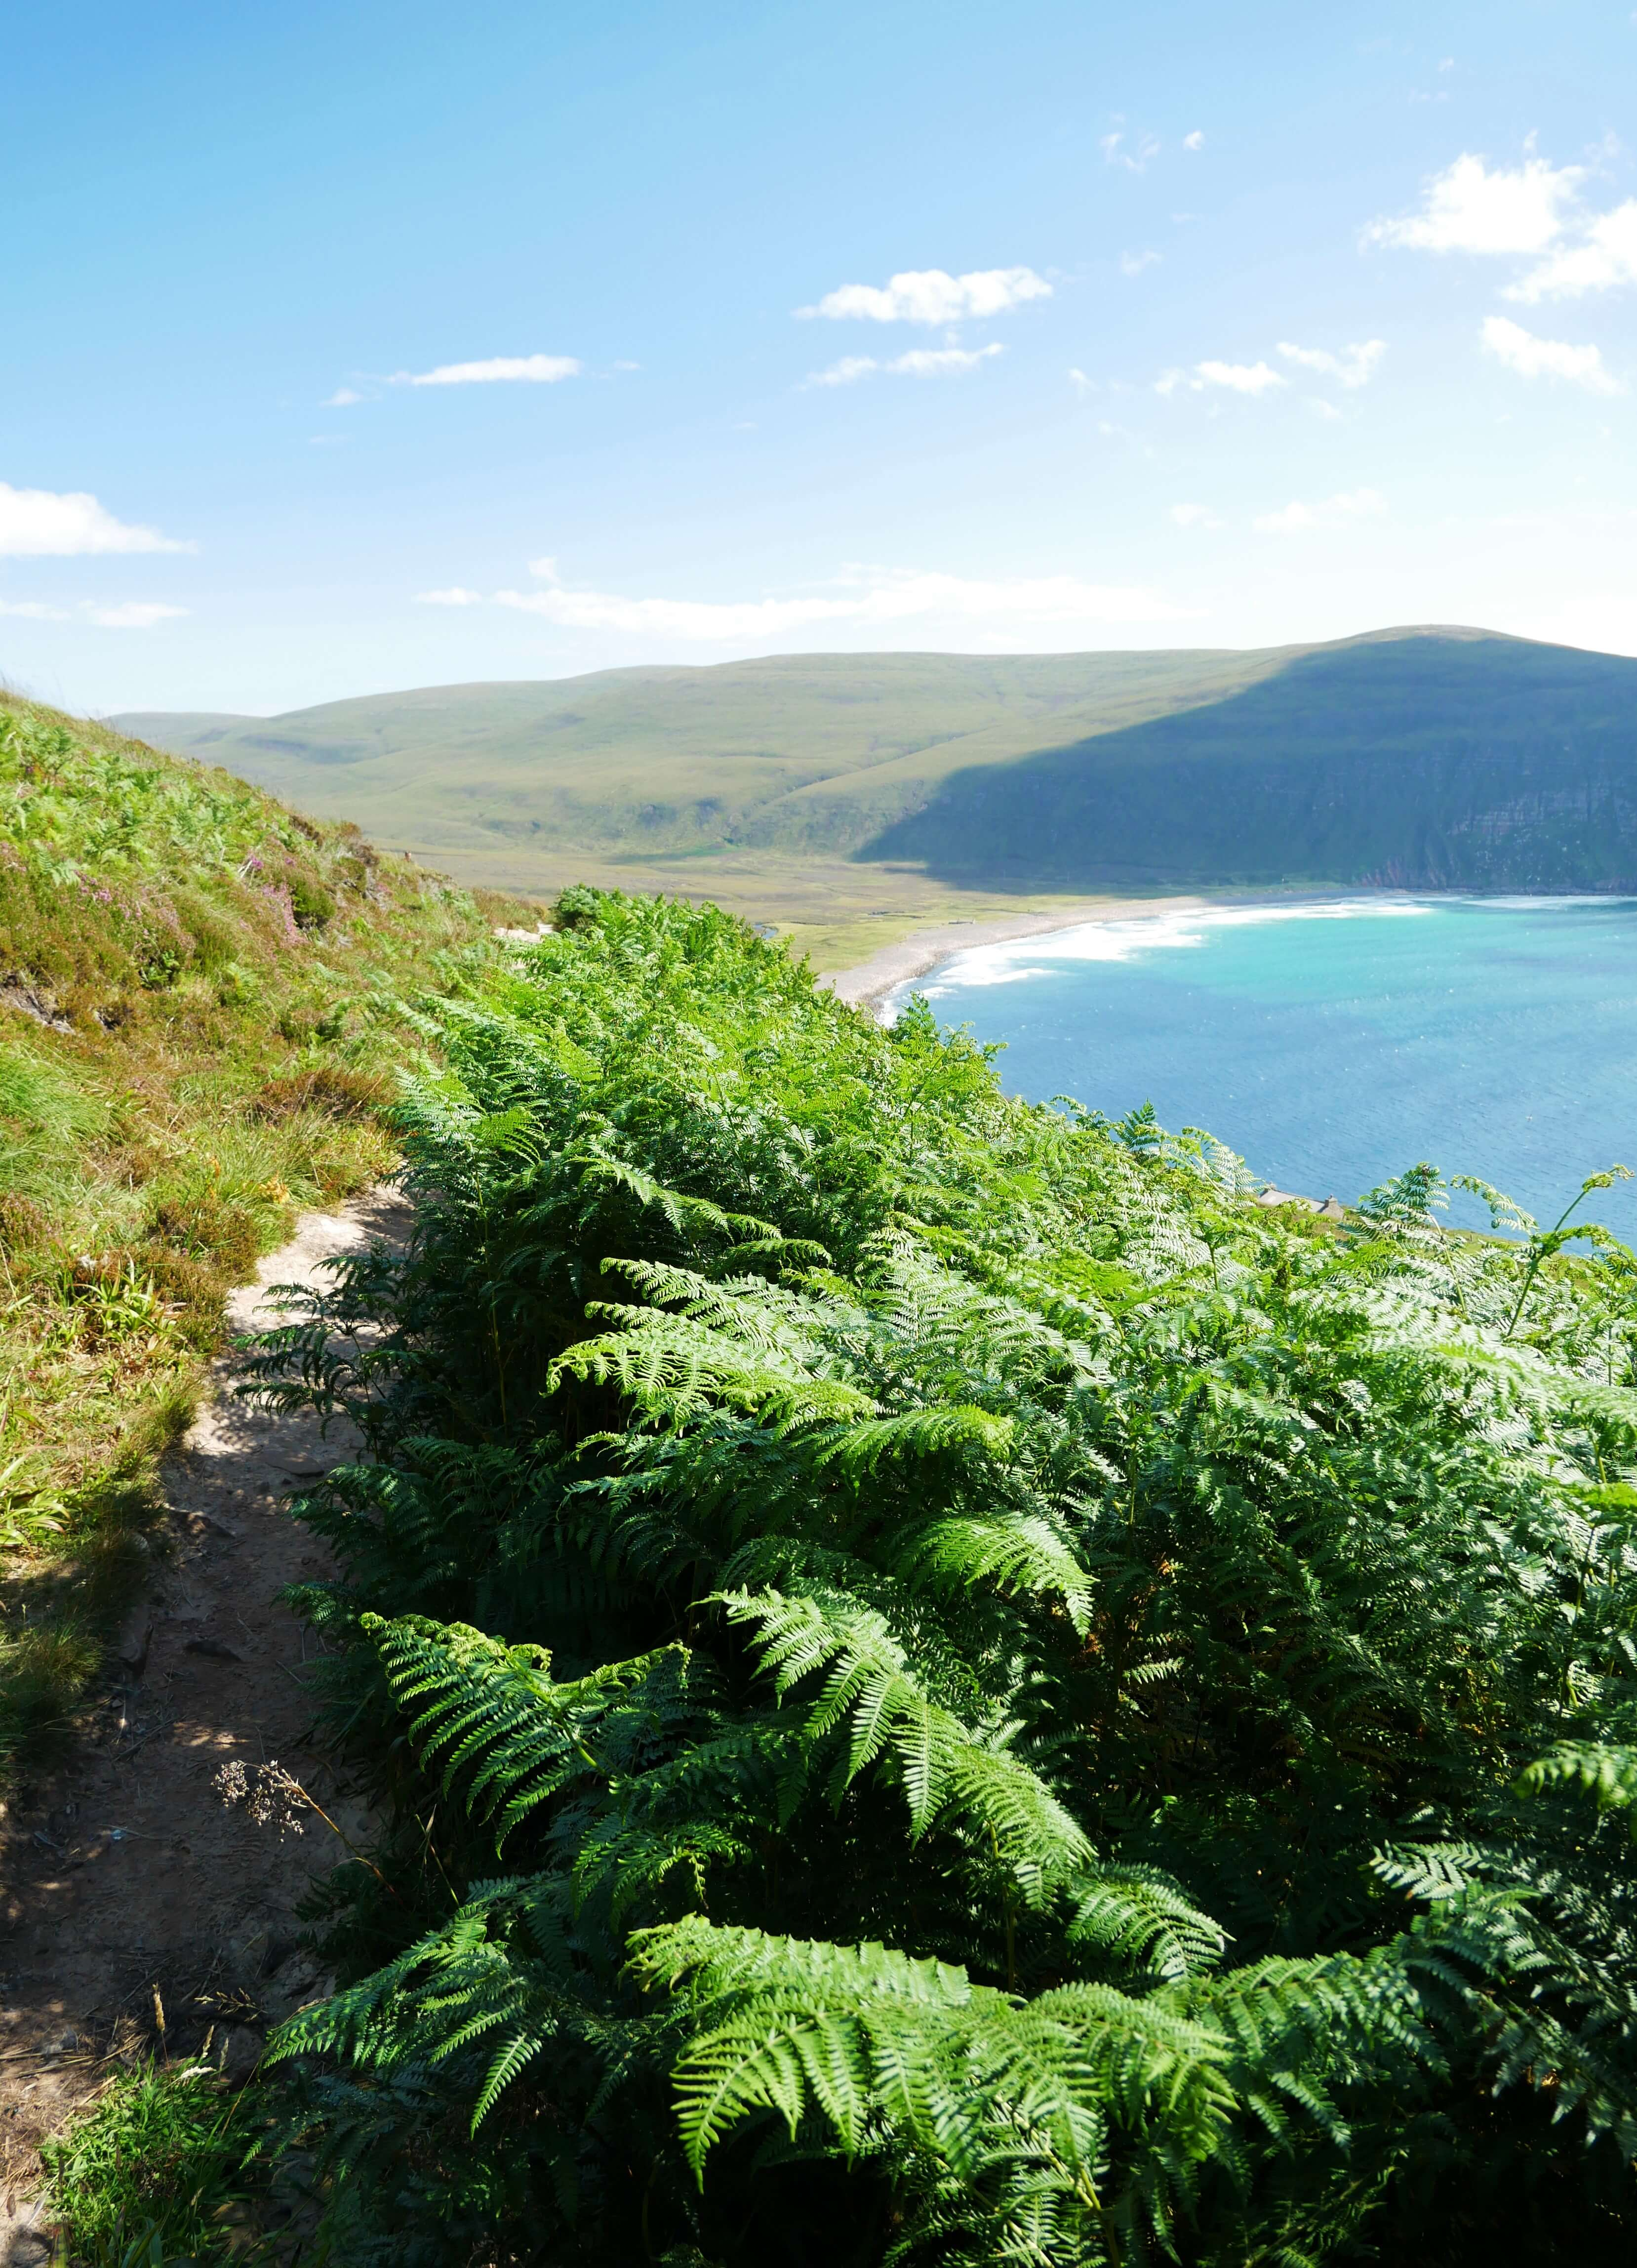 The path to the Old Man of Hoy, Orkney Islands, Scotland